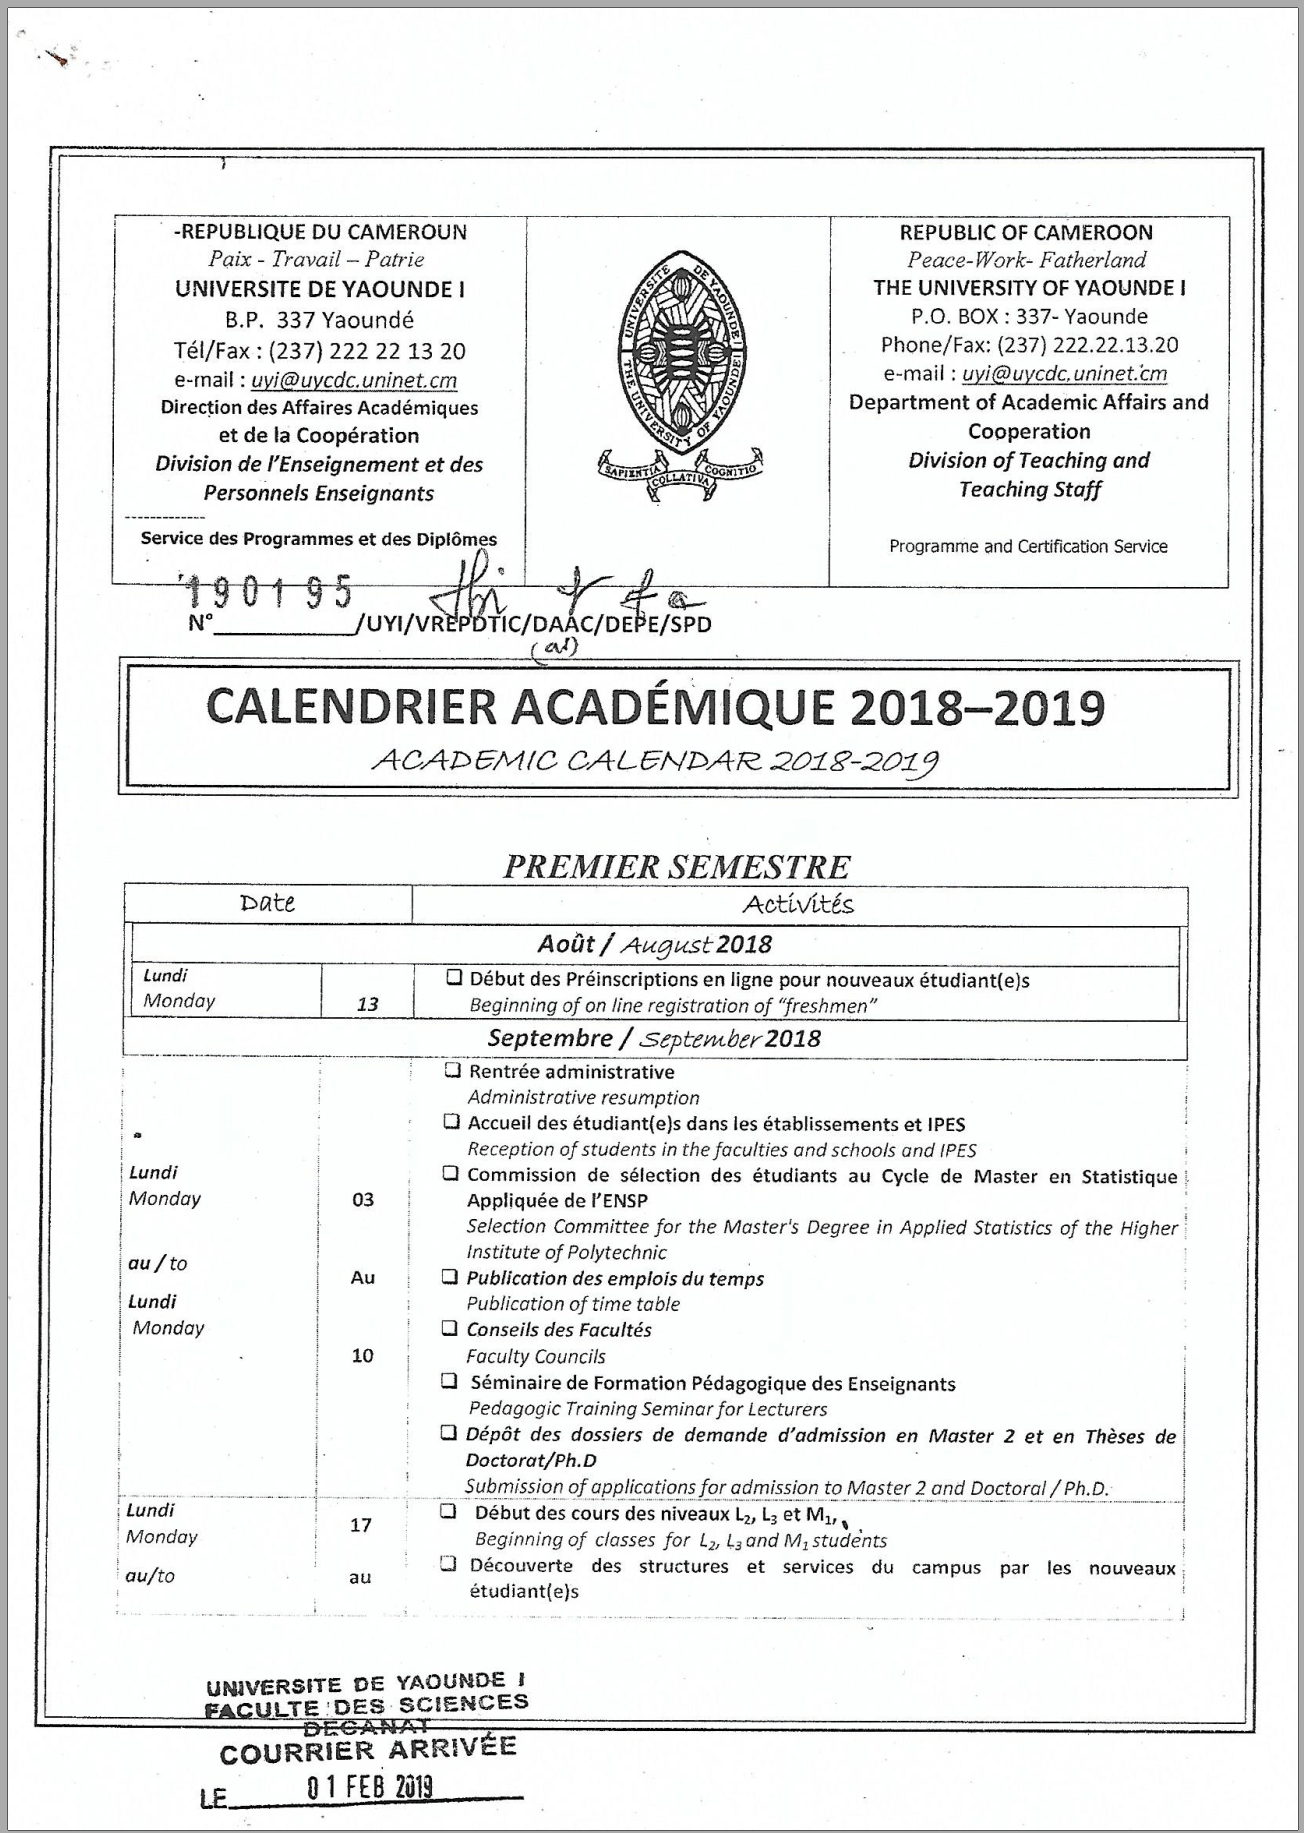 calendrier acad u00e9mique universit u00e9 de yaound u00e9 i  u2013 facult u00e9 des sciences